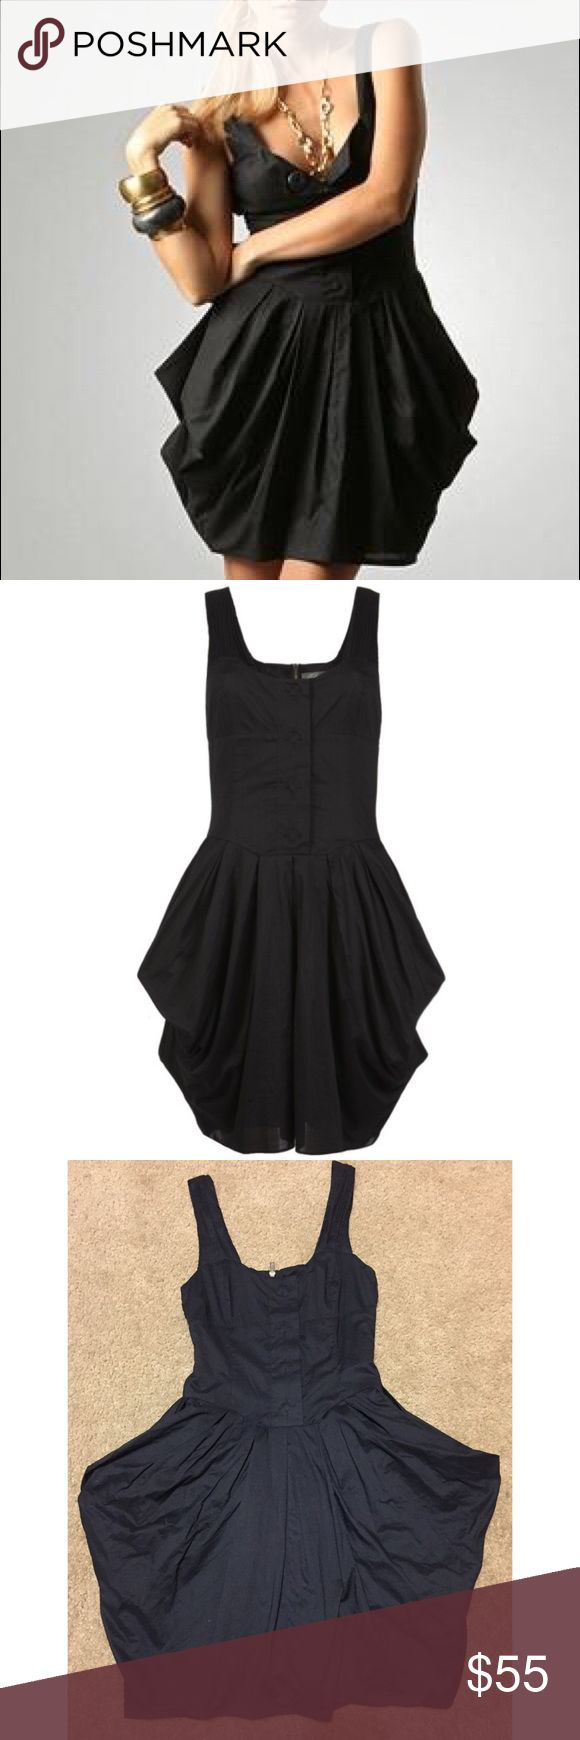 "ALLSAINTS Beaujolais Black Cotton Dress Sz 6 Small Classic Allsaints dress in size US 6 but runs smaller. Approx: 16"" across chest, 13"" Waist & 35.5"" length. 100% cotton ..Great condition! All Saints Dresses"